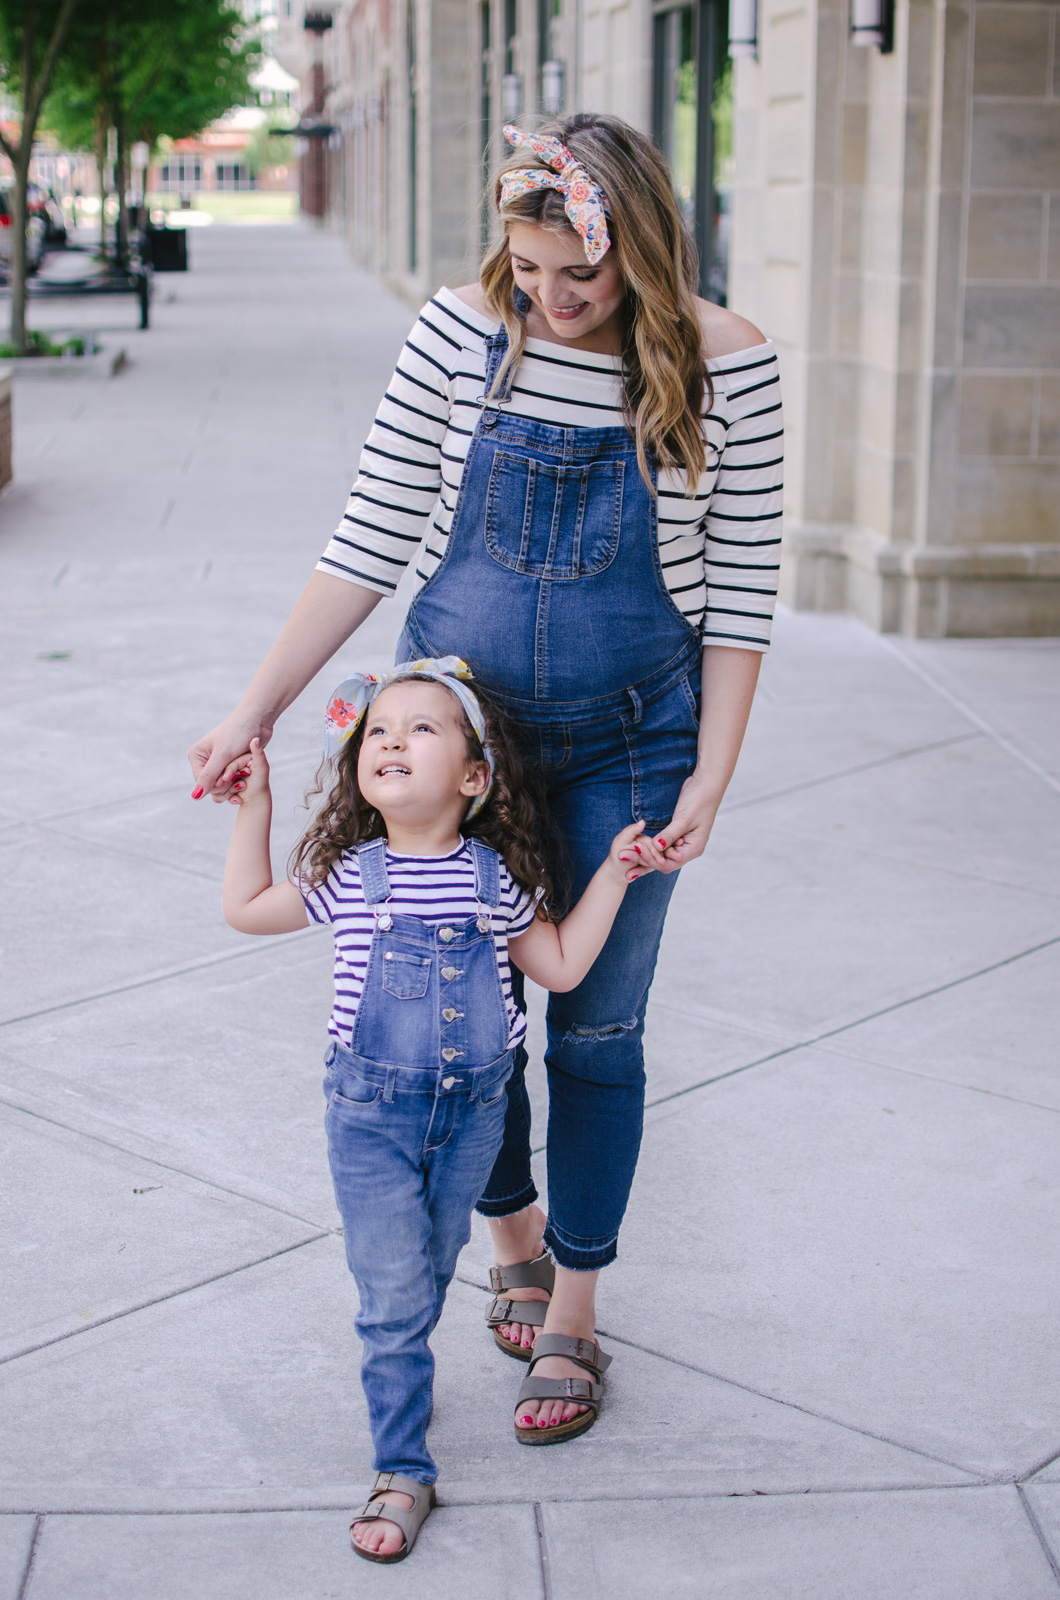 mommy and me matching outfits overalls - cute mommy and me spring outfit | bylaurenm.com